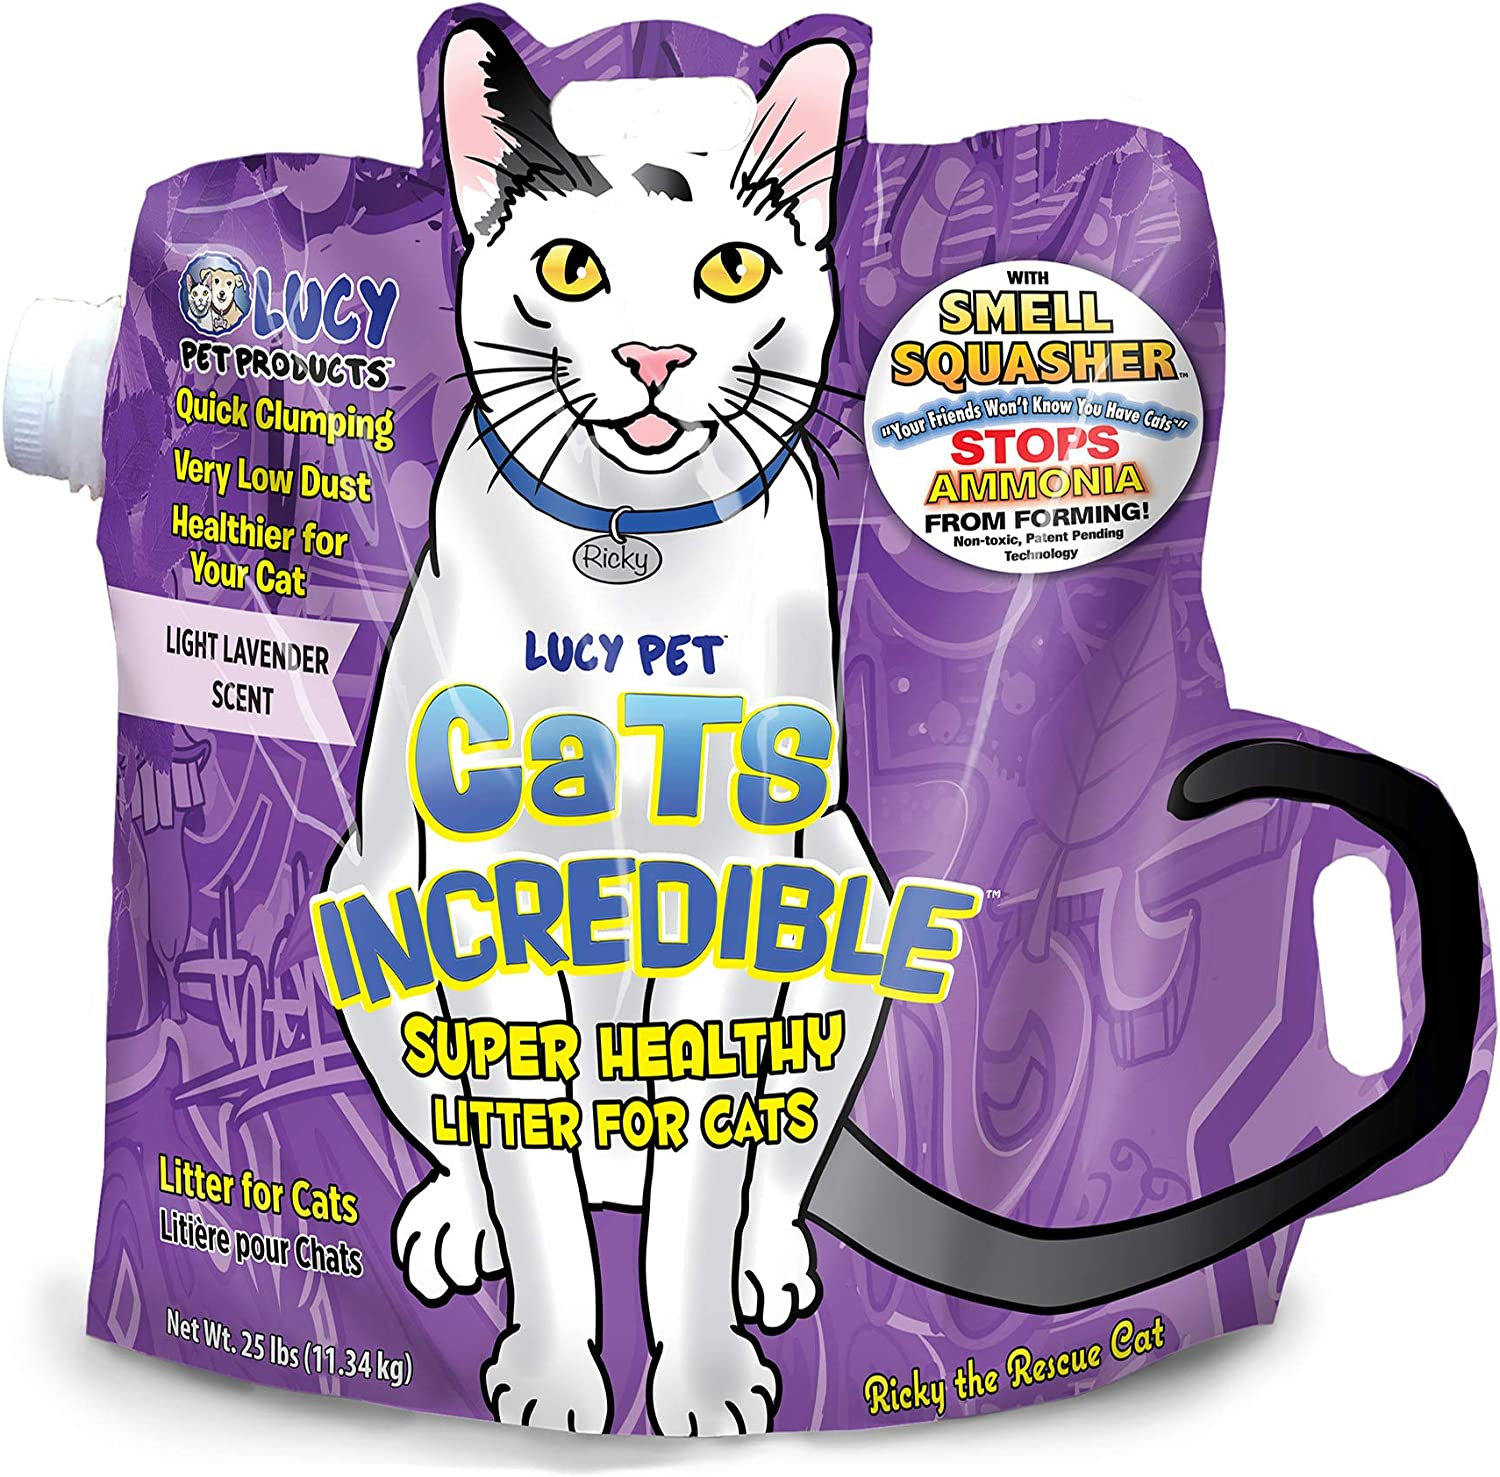 Lucy Pet Cats Incredible Clumping Cat Litter with Smell Squasher, Absorbent Natural Clay Formula Prevents Ammonia Build-Up